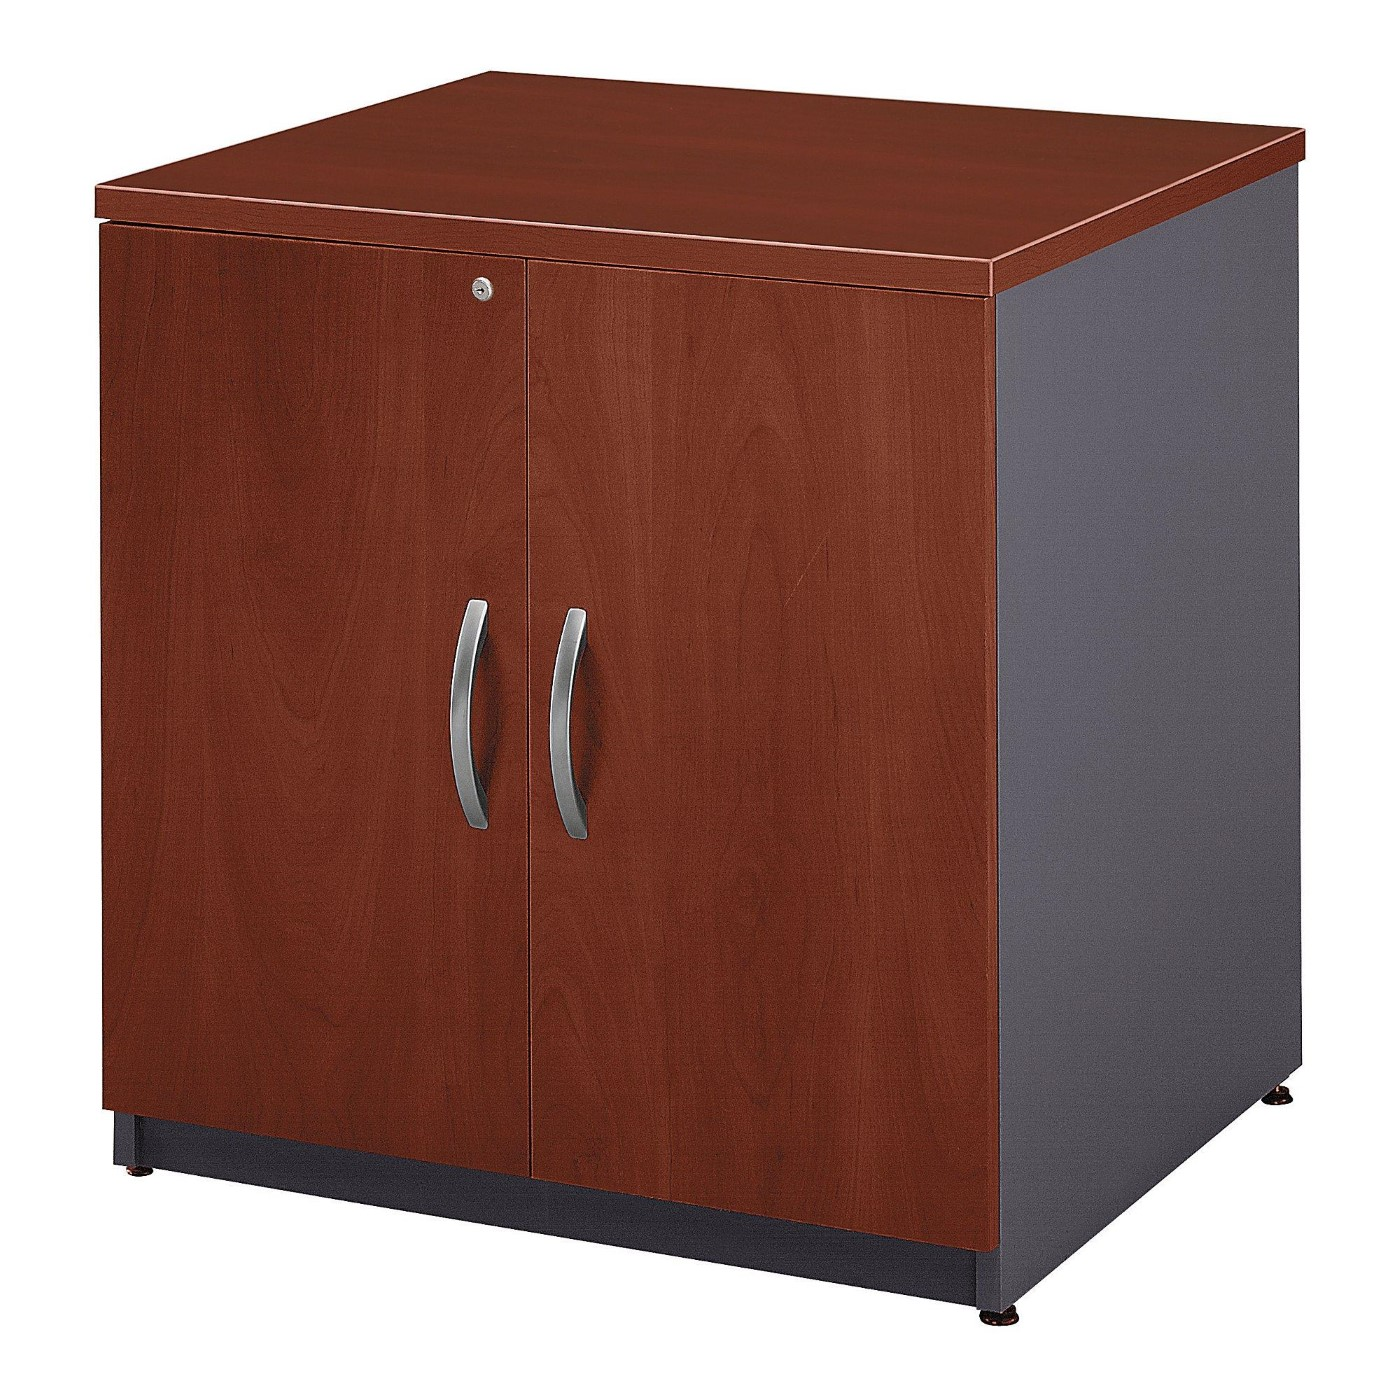 BUSH BUSINESS FURNITURE SERIES C 30W STORAGE CABINET. FREE SHIPPING  VIDEO BELOW.